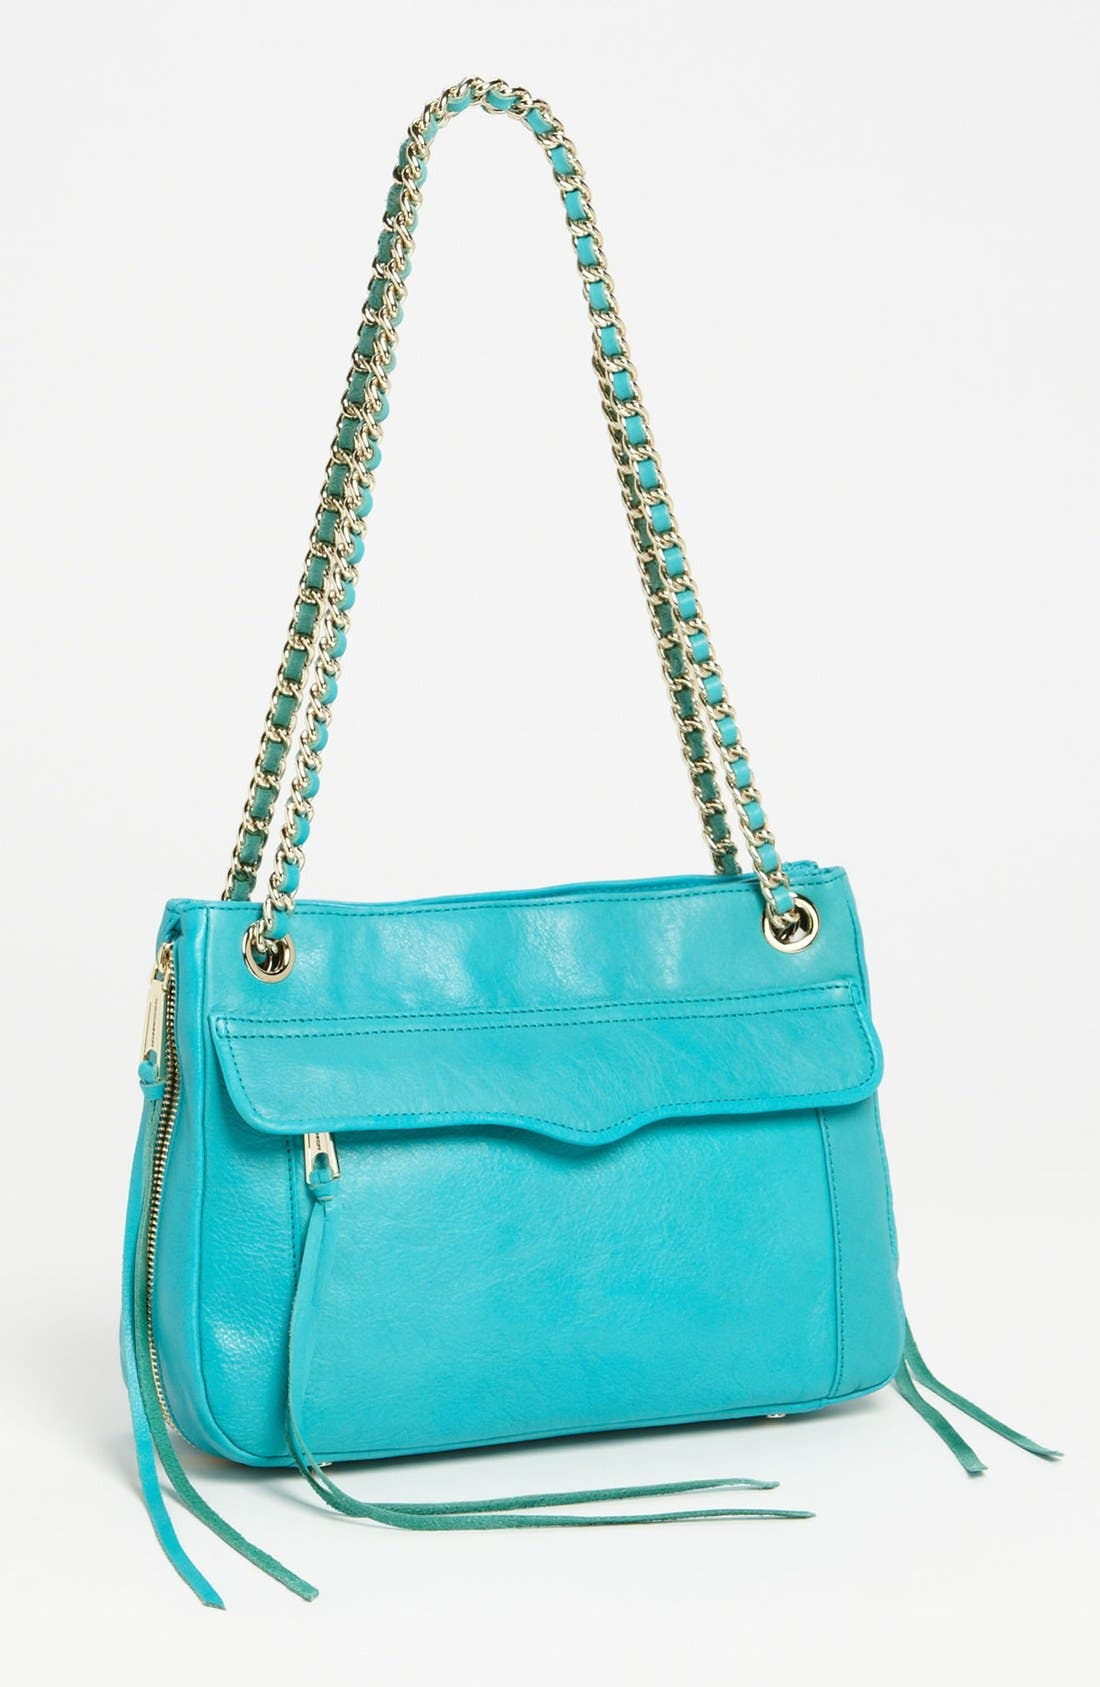 Alternate Image 1 Selected - Rebecca Minkoff 'Swing' Convertible Shoulder Bag